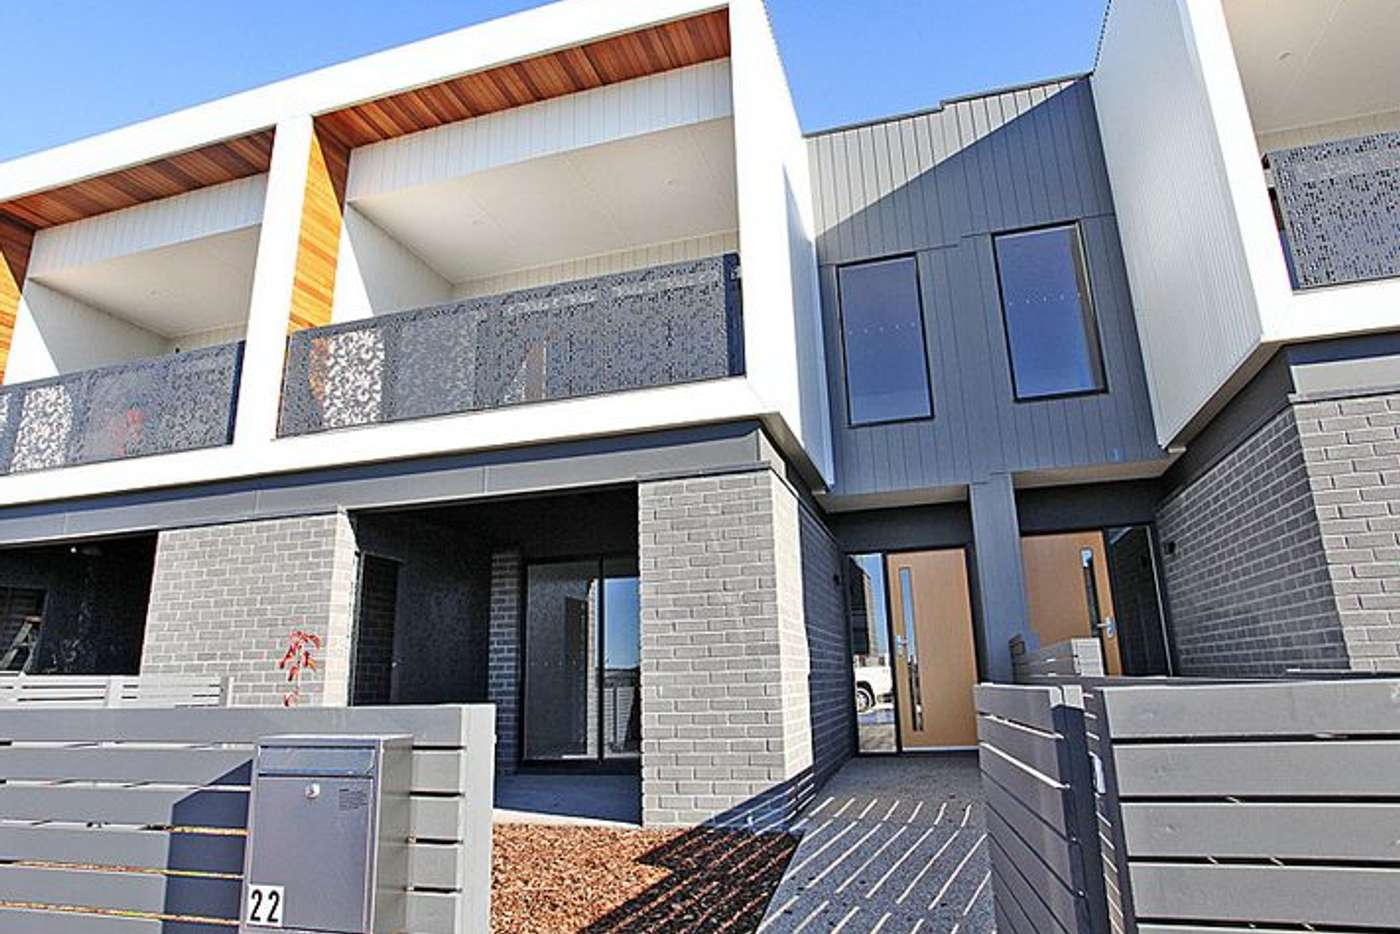 Main view of Homely townhouse listing, 22 Totem Way, Point Cook VIC 3030